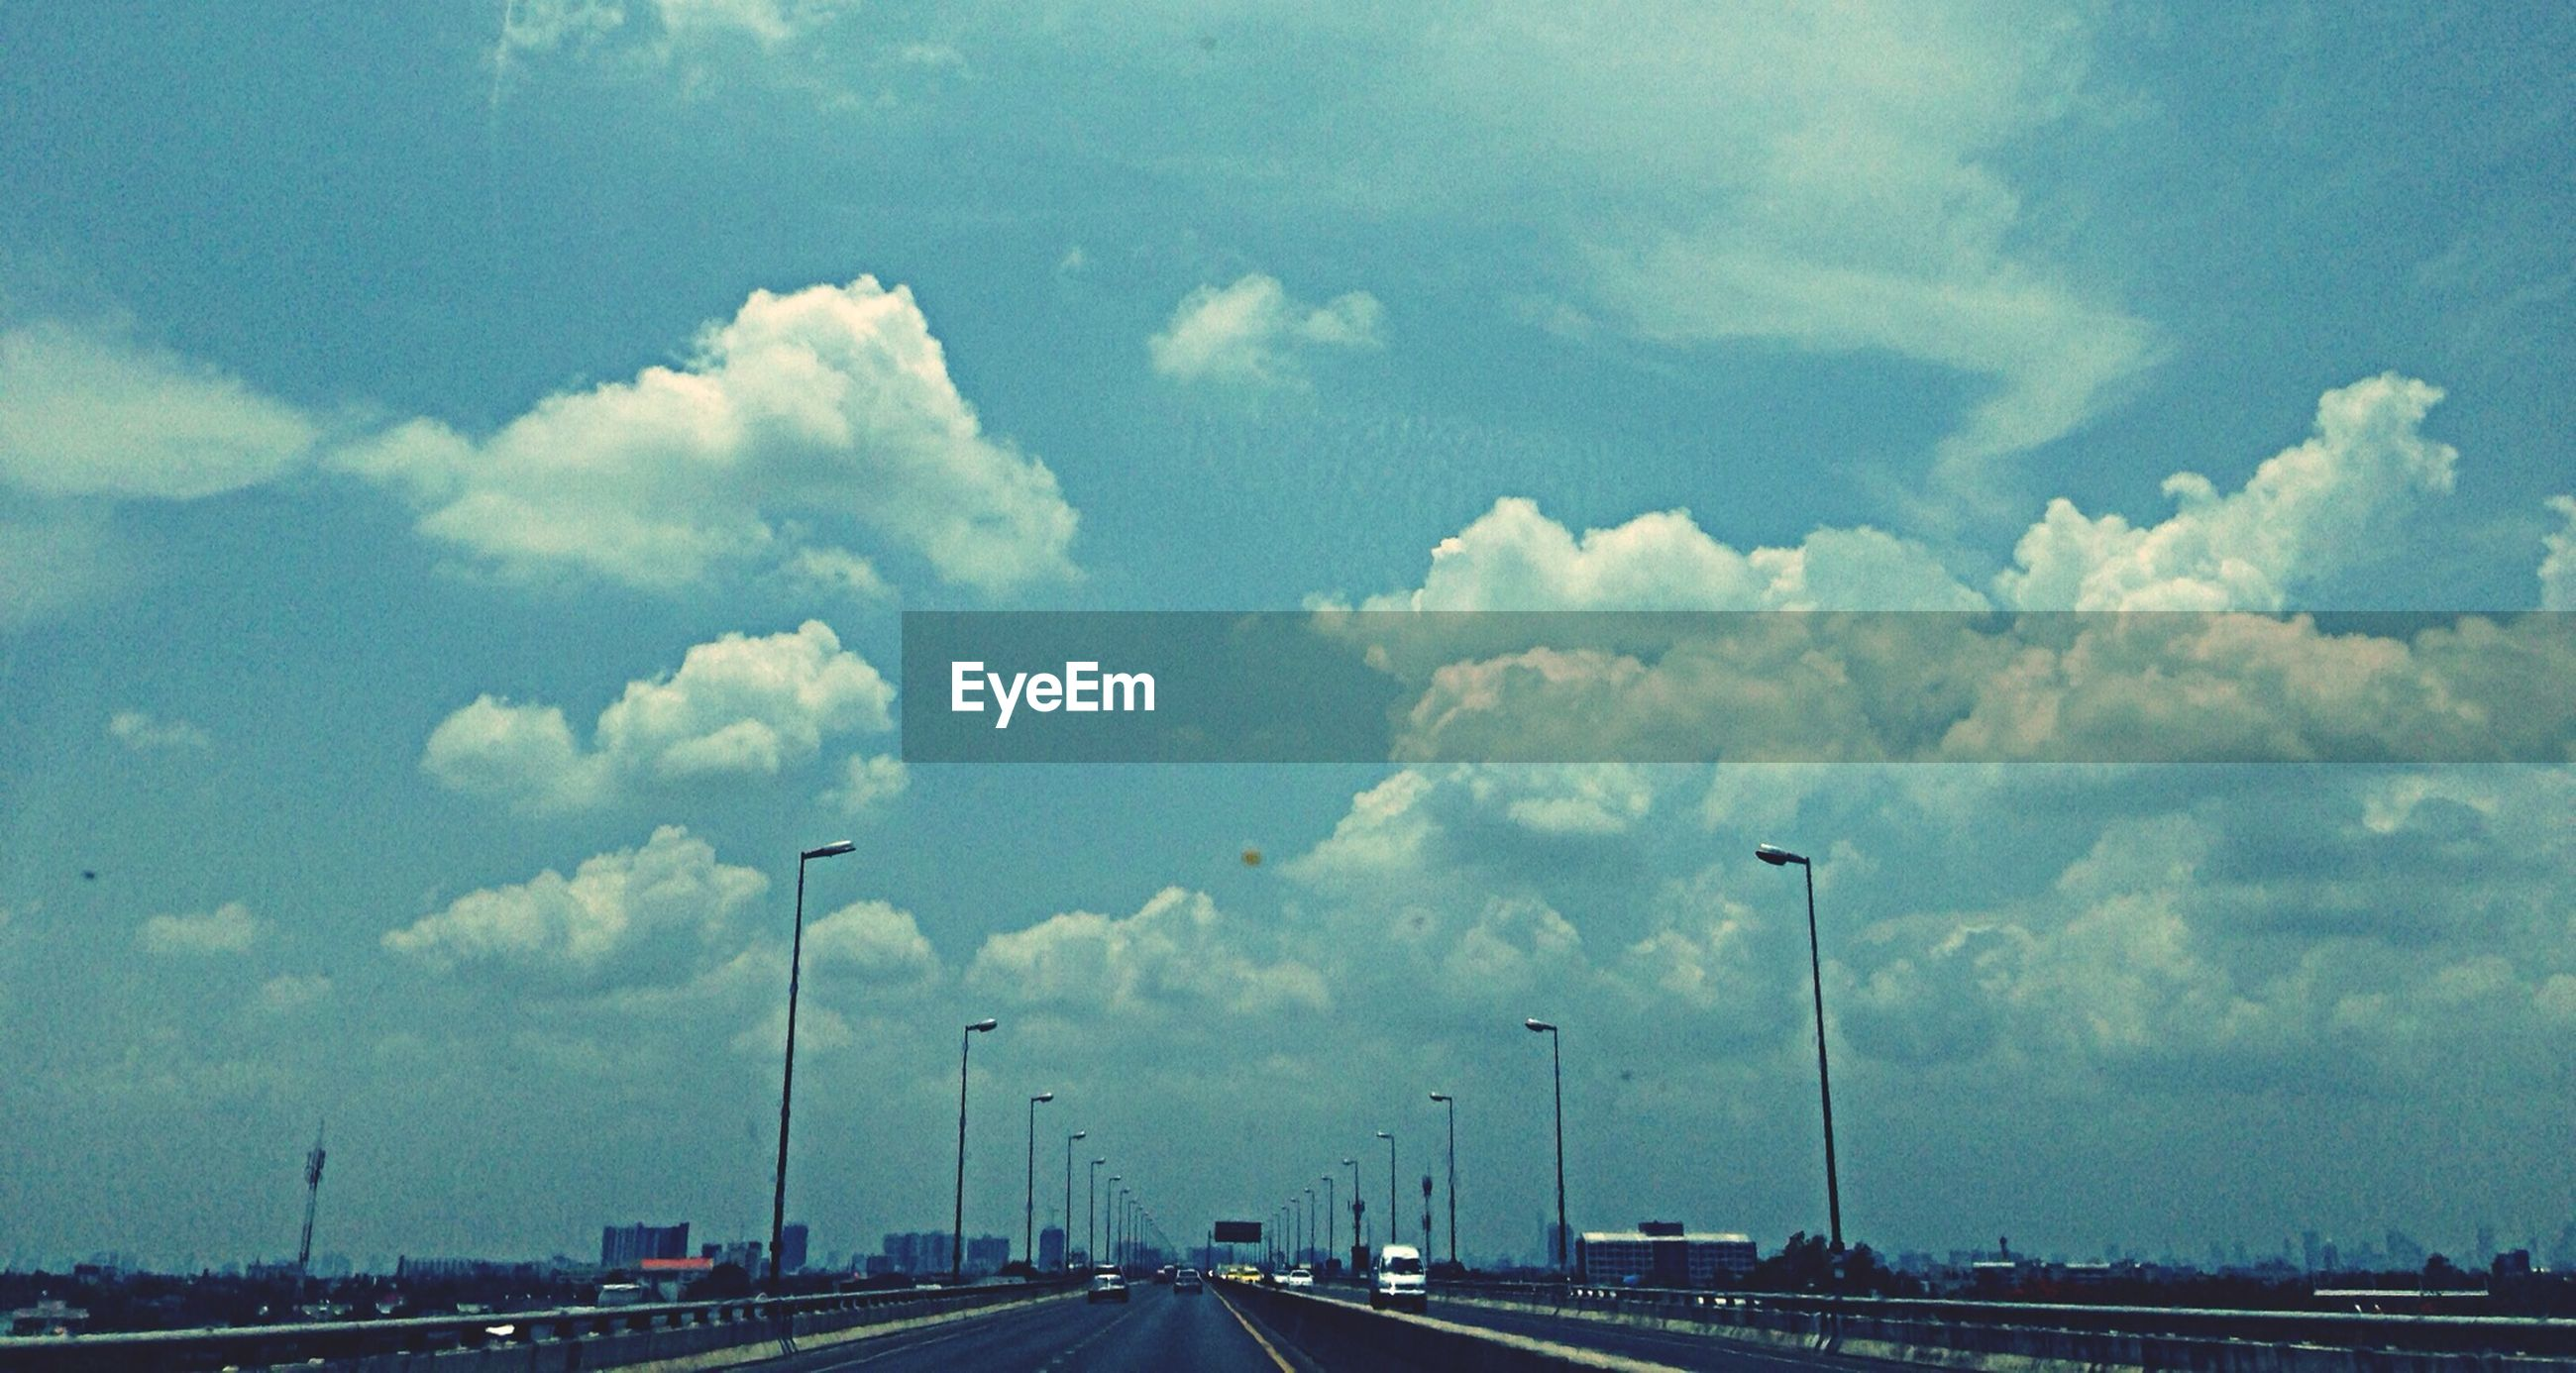 sky, the way forward, transportation, road, cloud - sky, street light, diminishing perspective, vanishing point, road marking, street, car, cloudy, cloud, blue, empty, land vehicle, outdoors, built structure, no people, highway